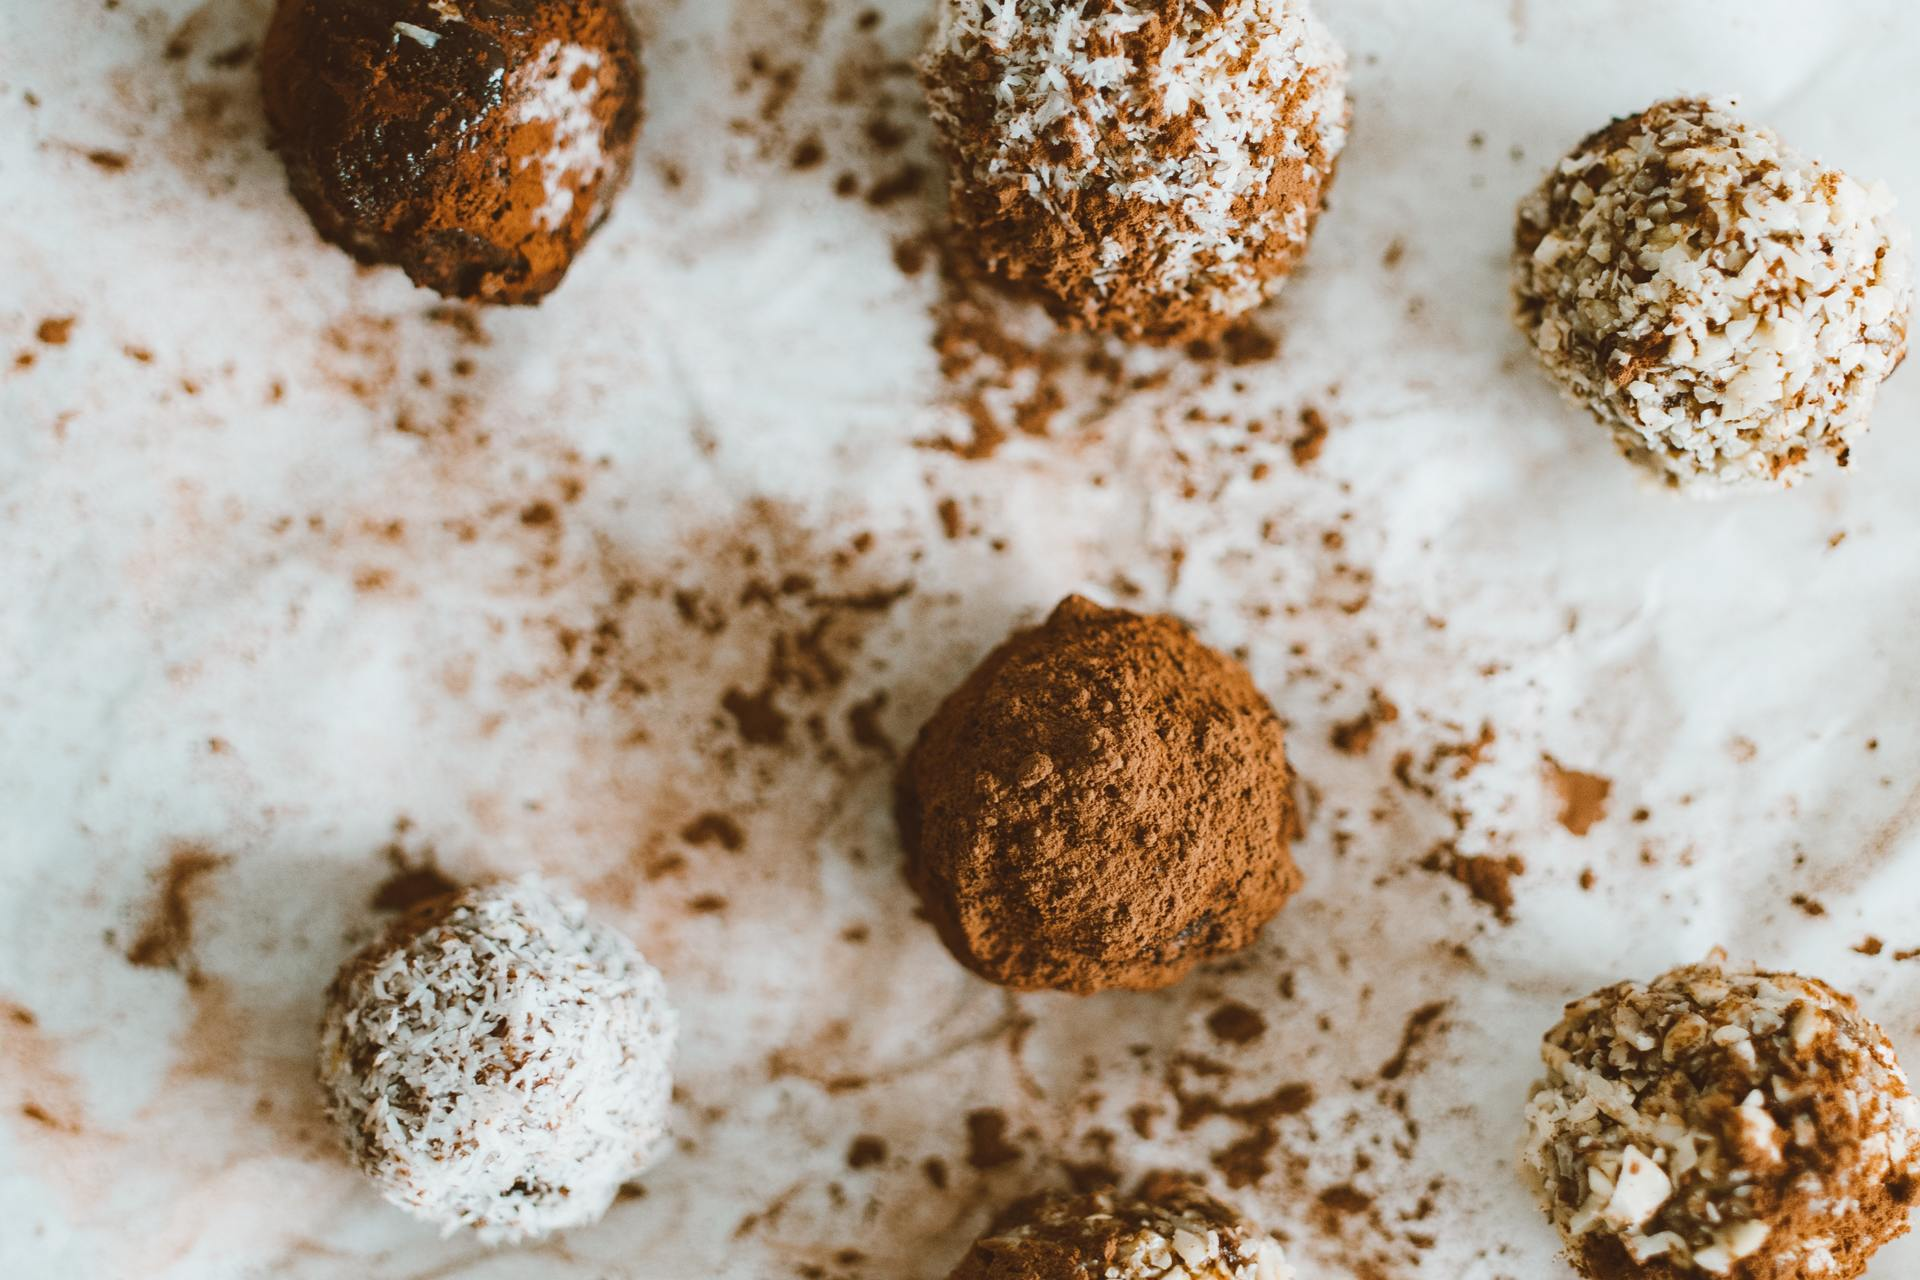 bonbons and truffles on a counter